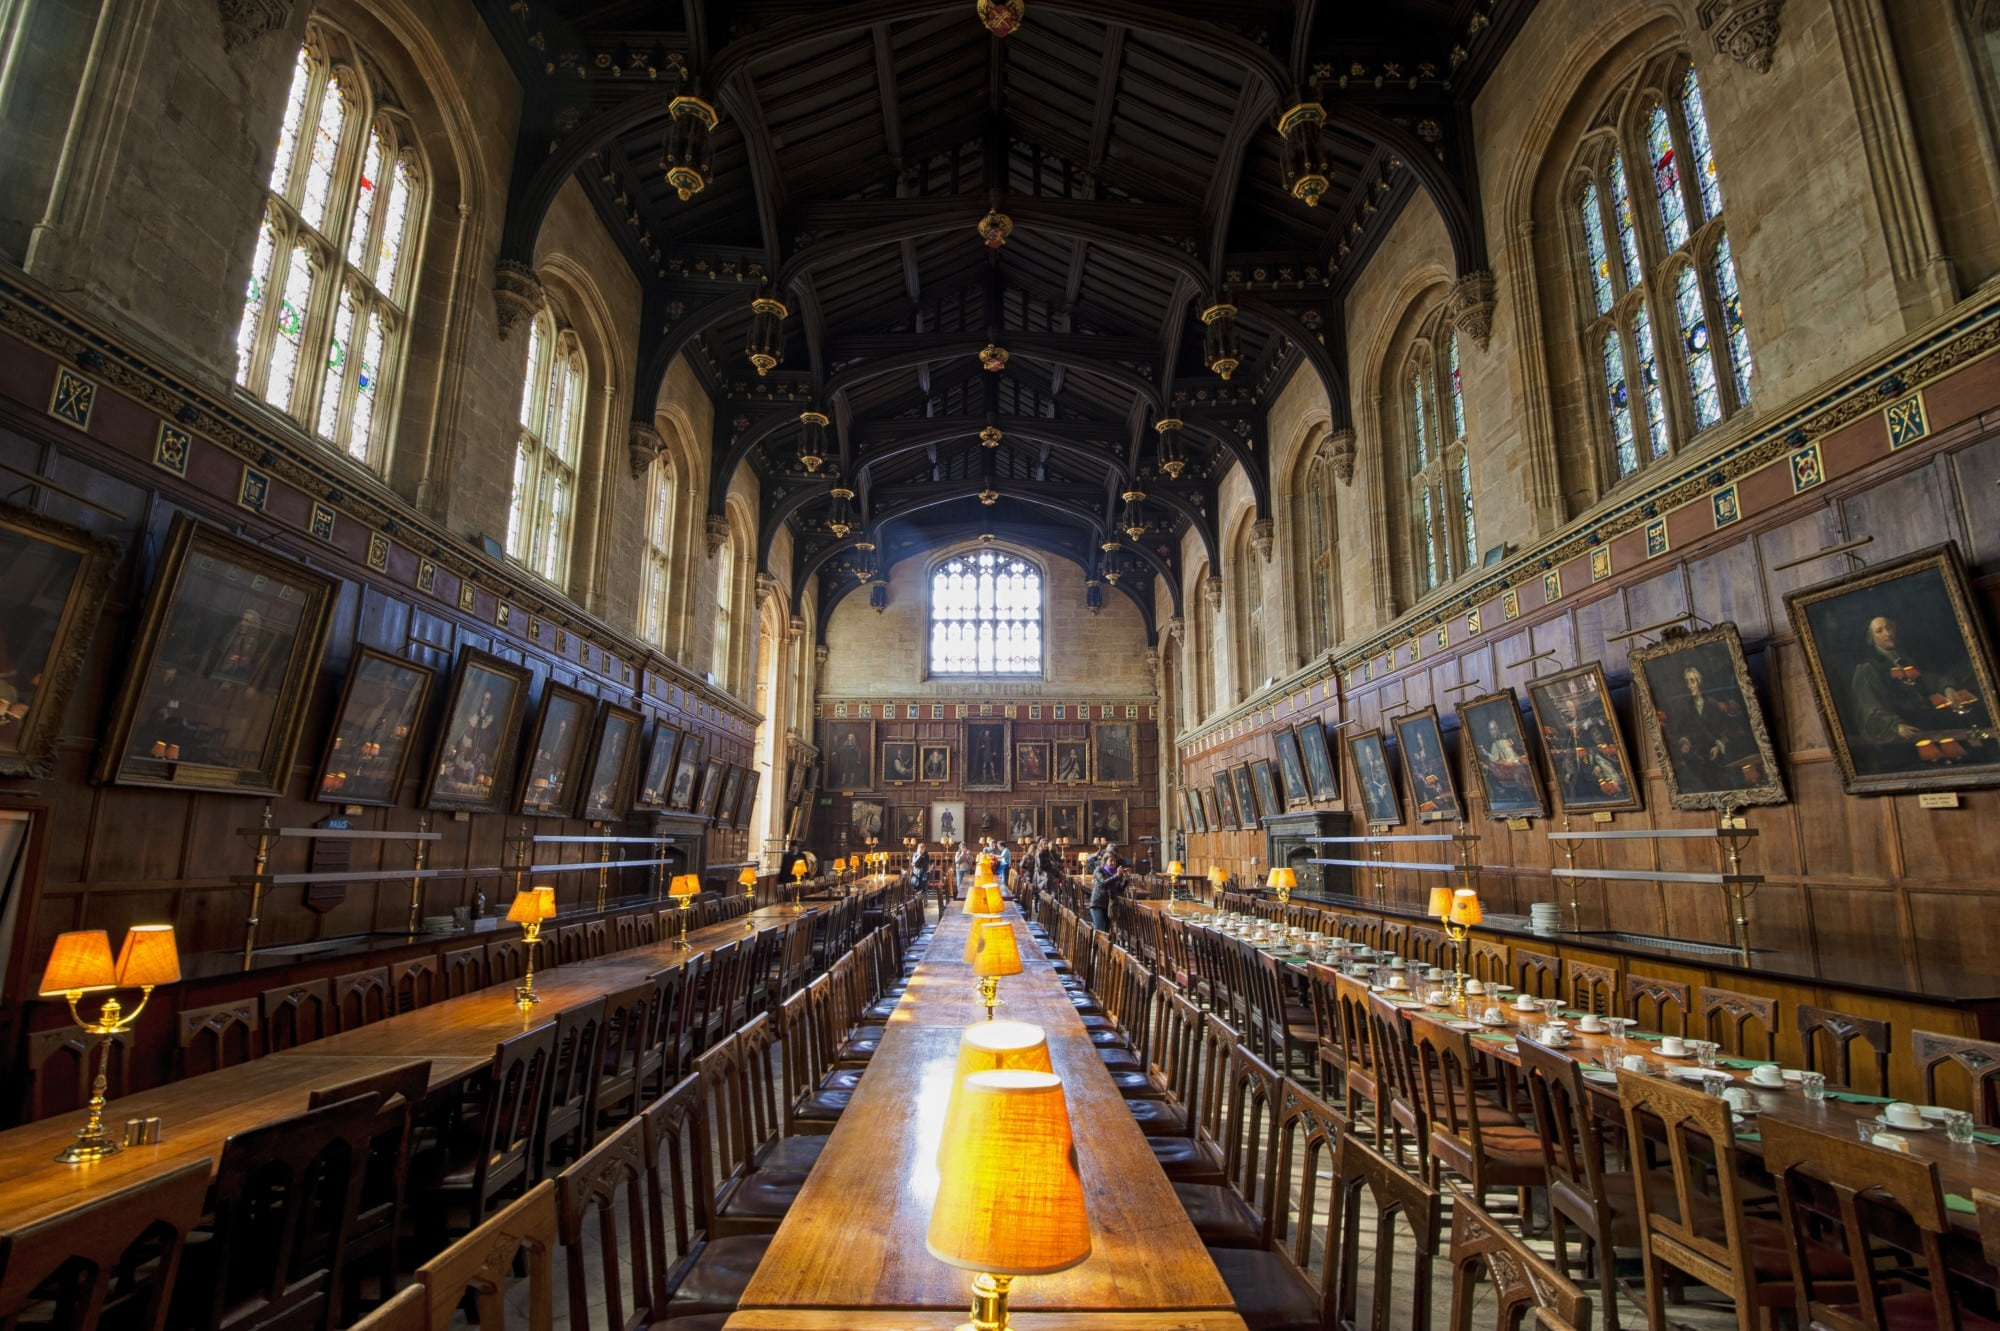 séjour linguistique angleterre oxford harry potter